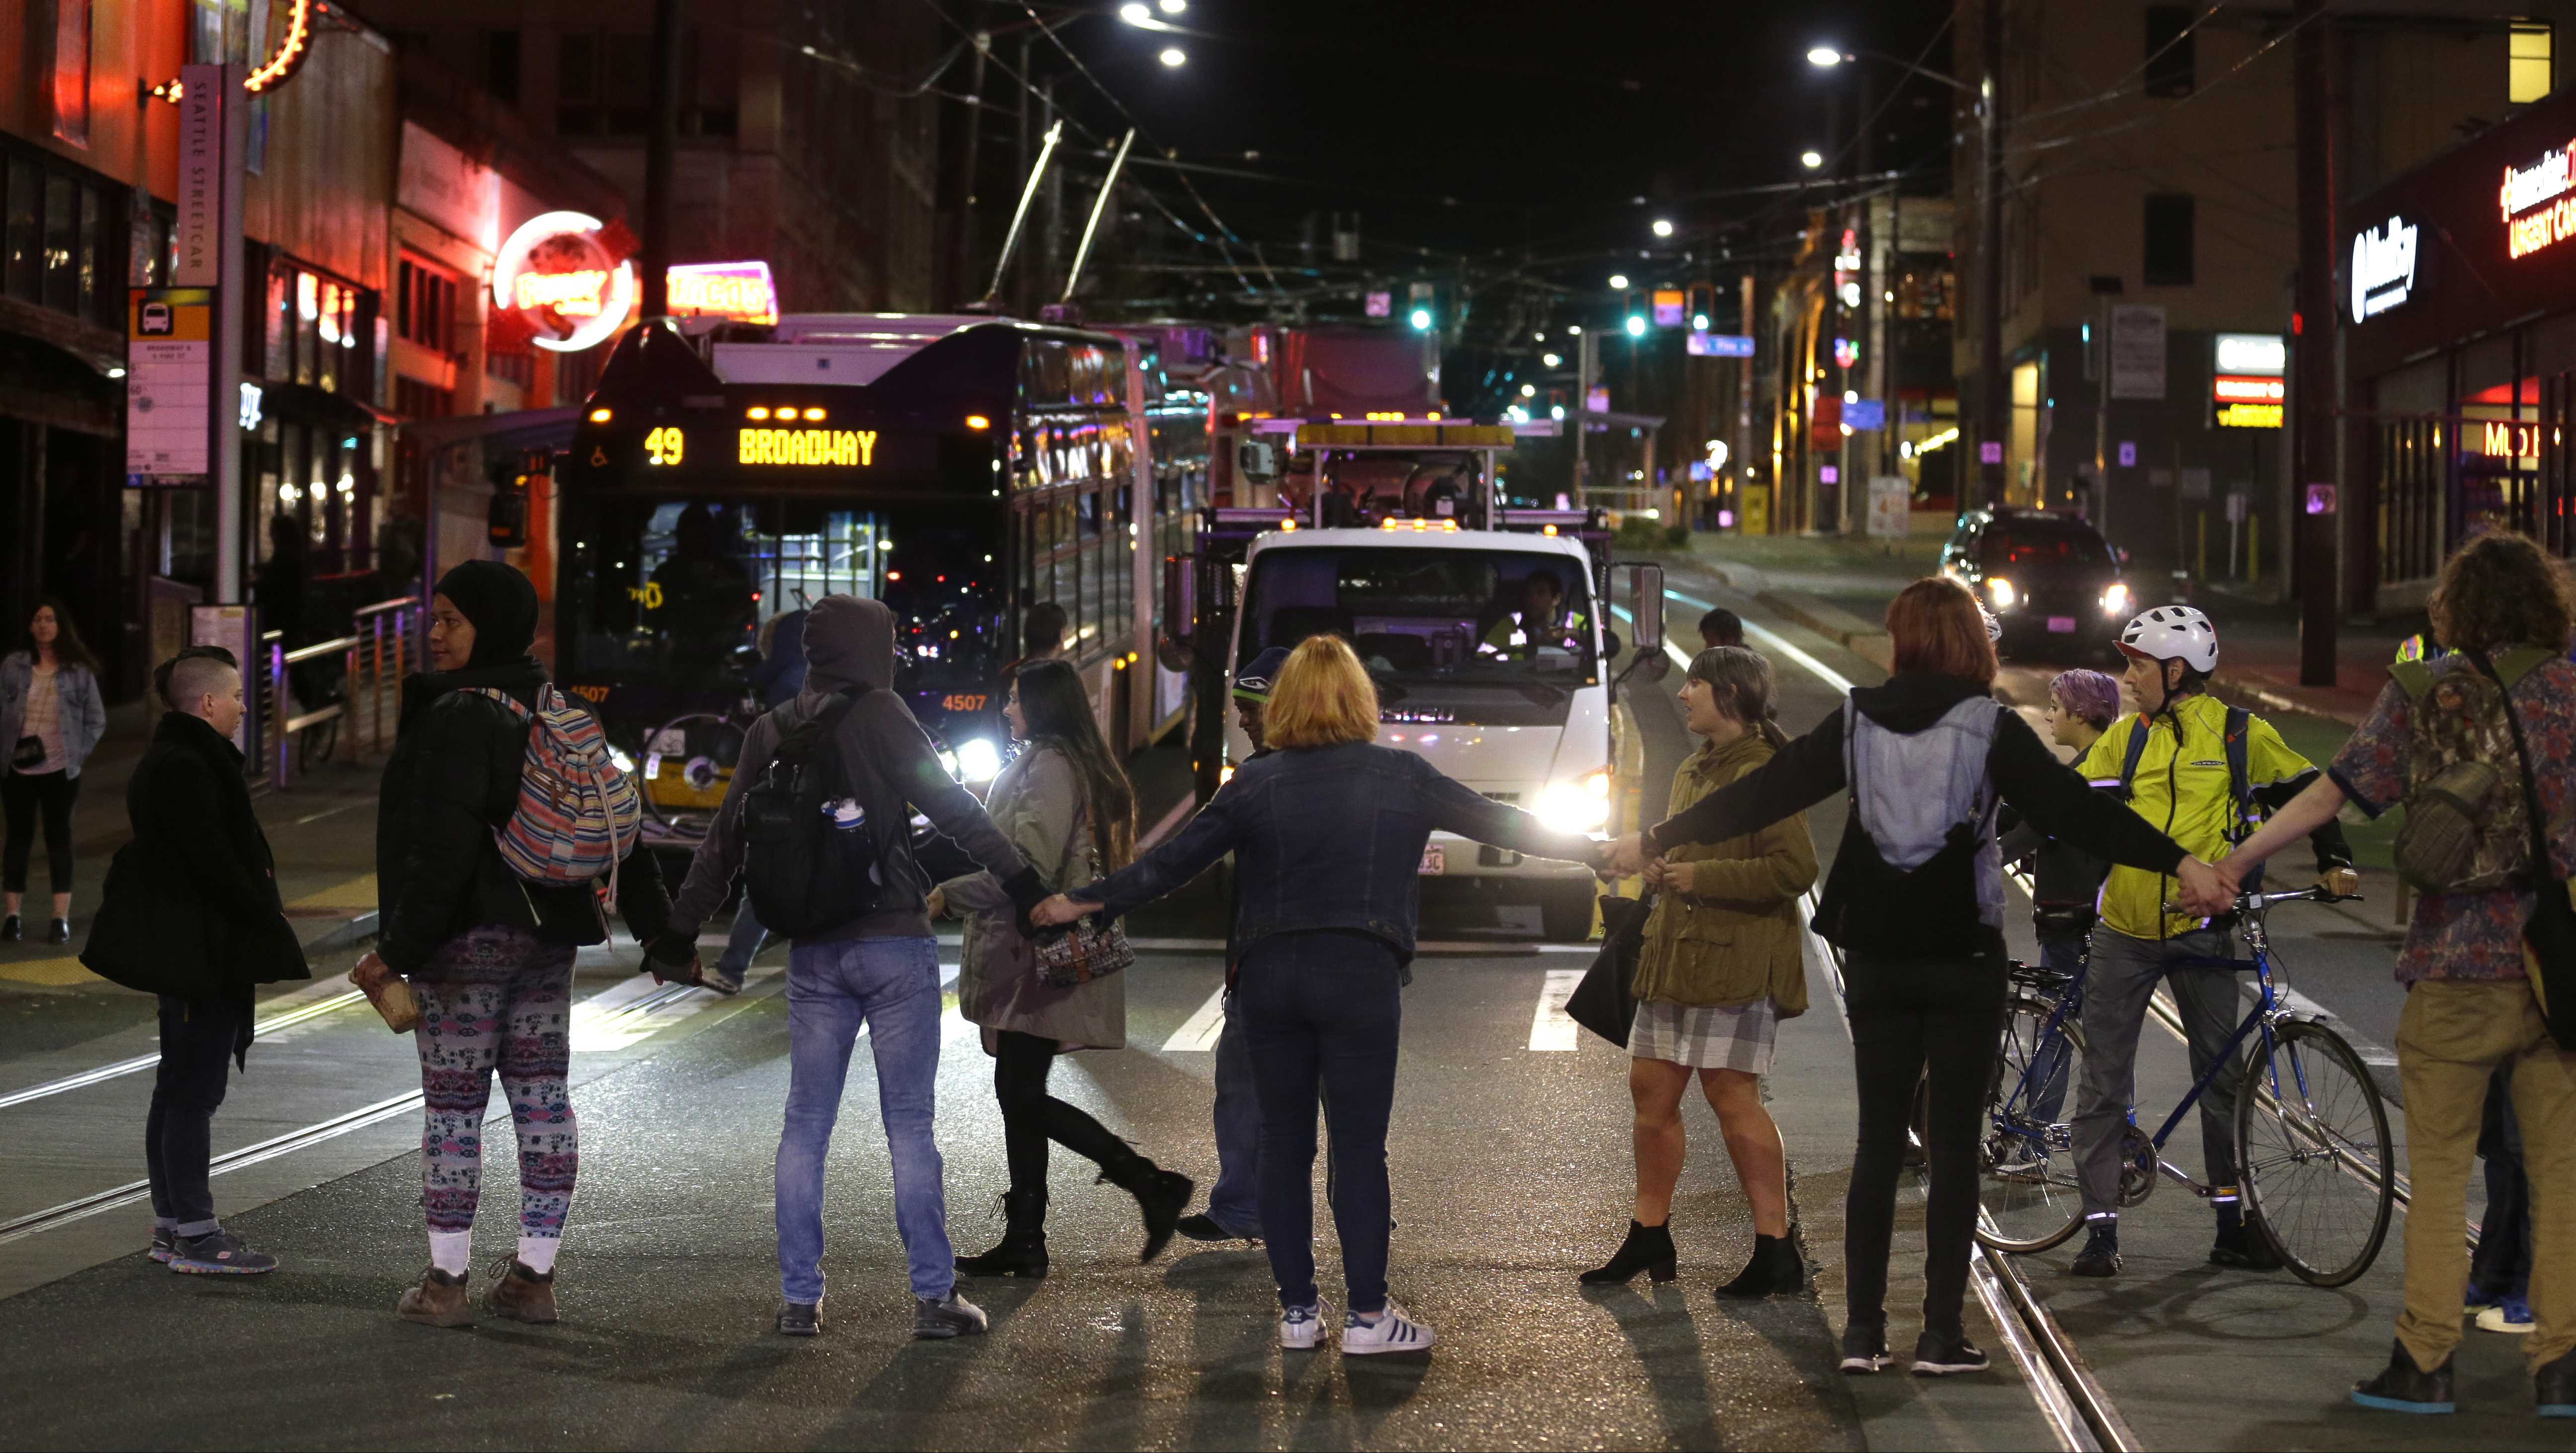 Elsewhere, protesters block a street and stop traffic during a demonstration against President-elect Donald Trump, early Wednesday, Nov. 9, 2016, in Seattle's Capitol Hill neighborhood.